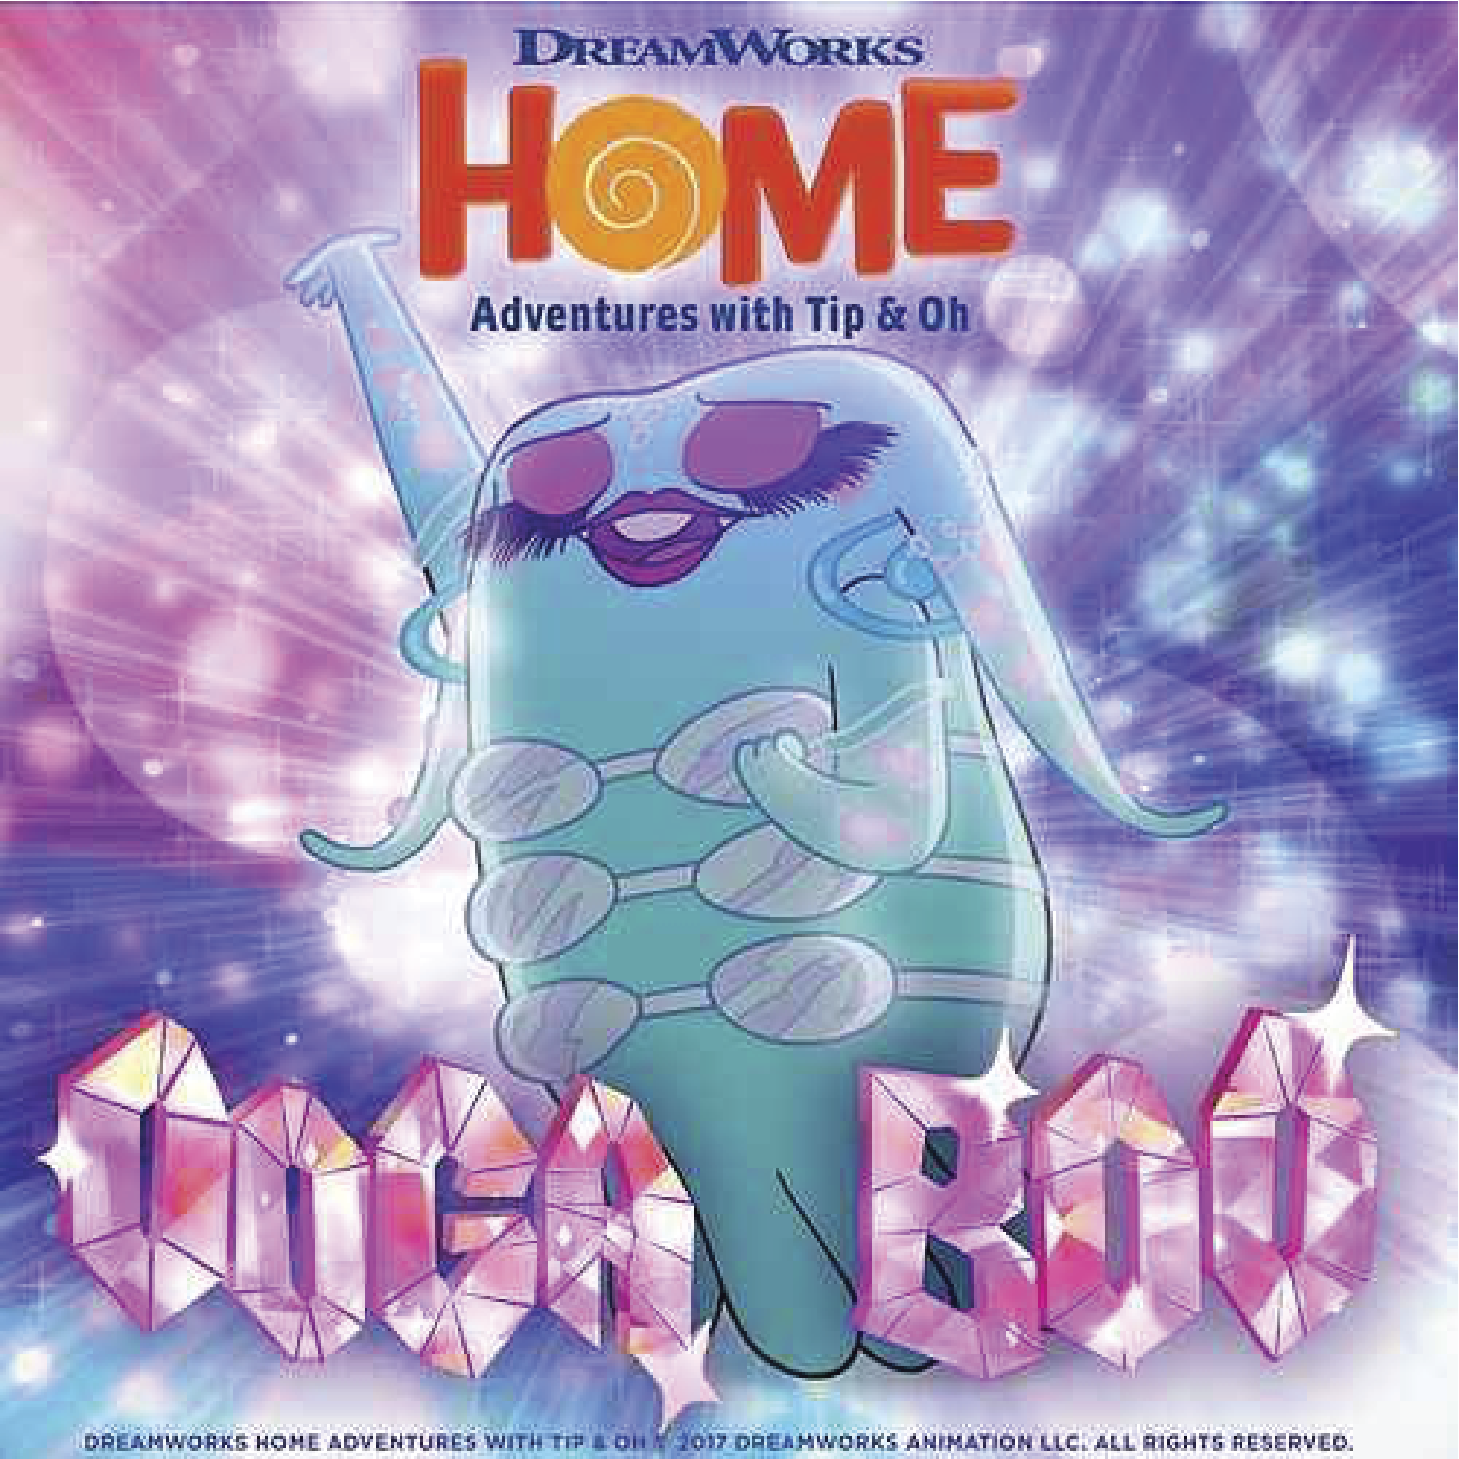 Shout out to  Alex Geringas for writing another great song and scoring DreamWorks  Home:Adventures with Tip & Oh!